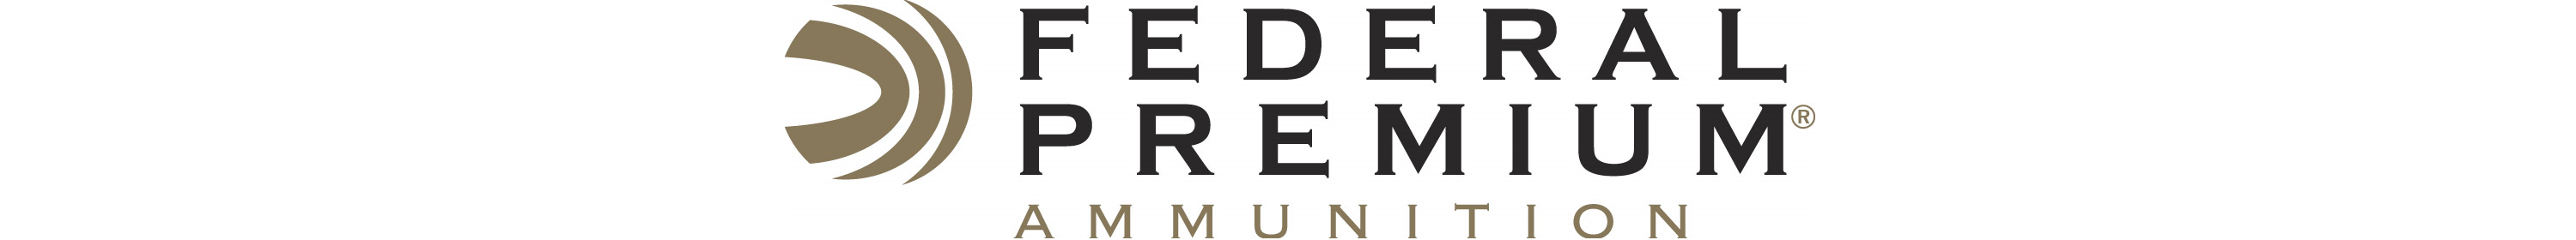 3 Federal Premium Ammunition Logo